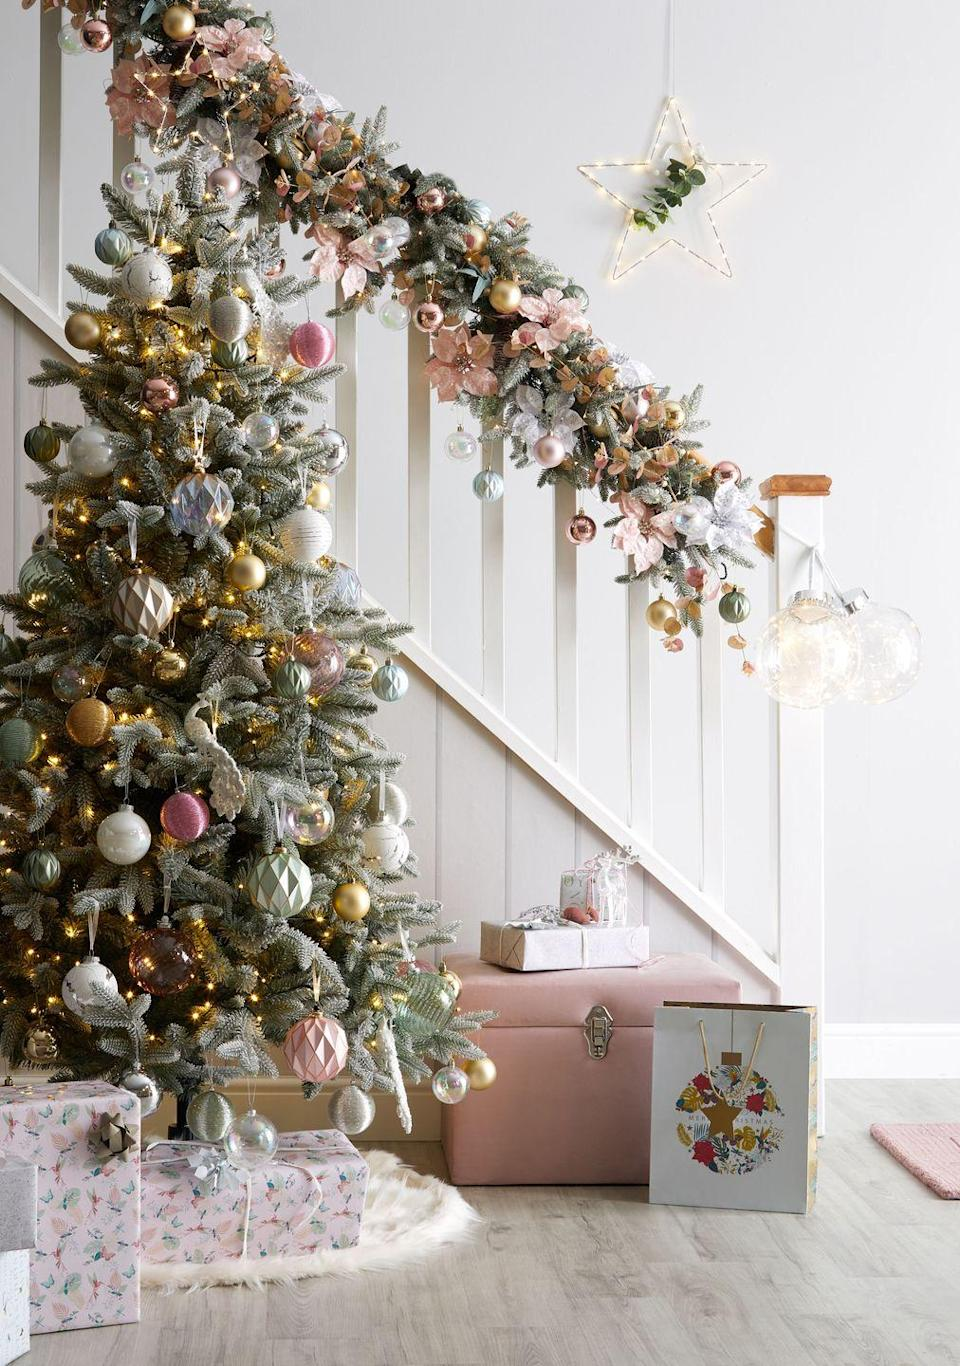 <p>Combine dusky pinks with metallics for Dunelm's Christmas tree trend, Christmas Tropics.</p><p>'A vibrant, tropical twist on Christmas, this glamorous but fun trend blends exotic with traditional,' say Dunelm. 'It mixes fabulous foliage with opulent birds and butterflies.'</p>